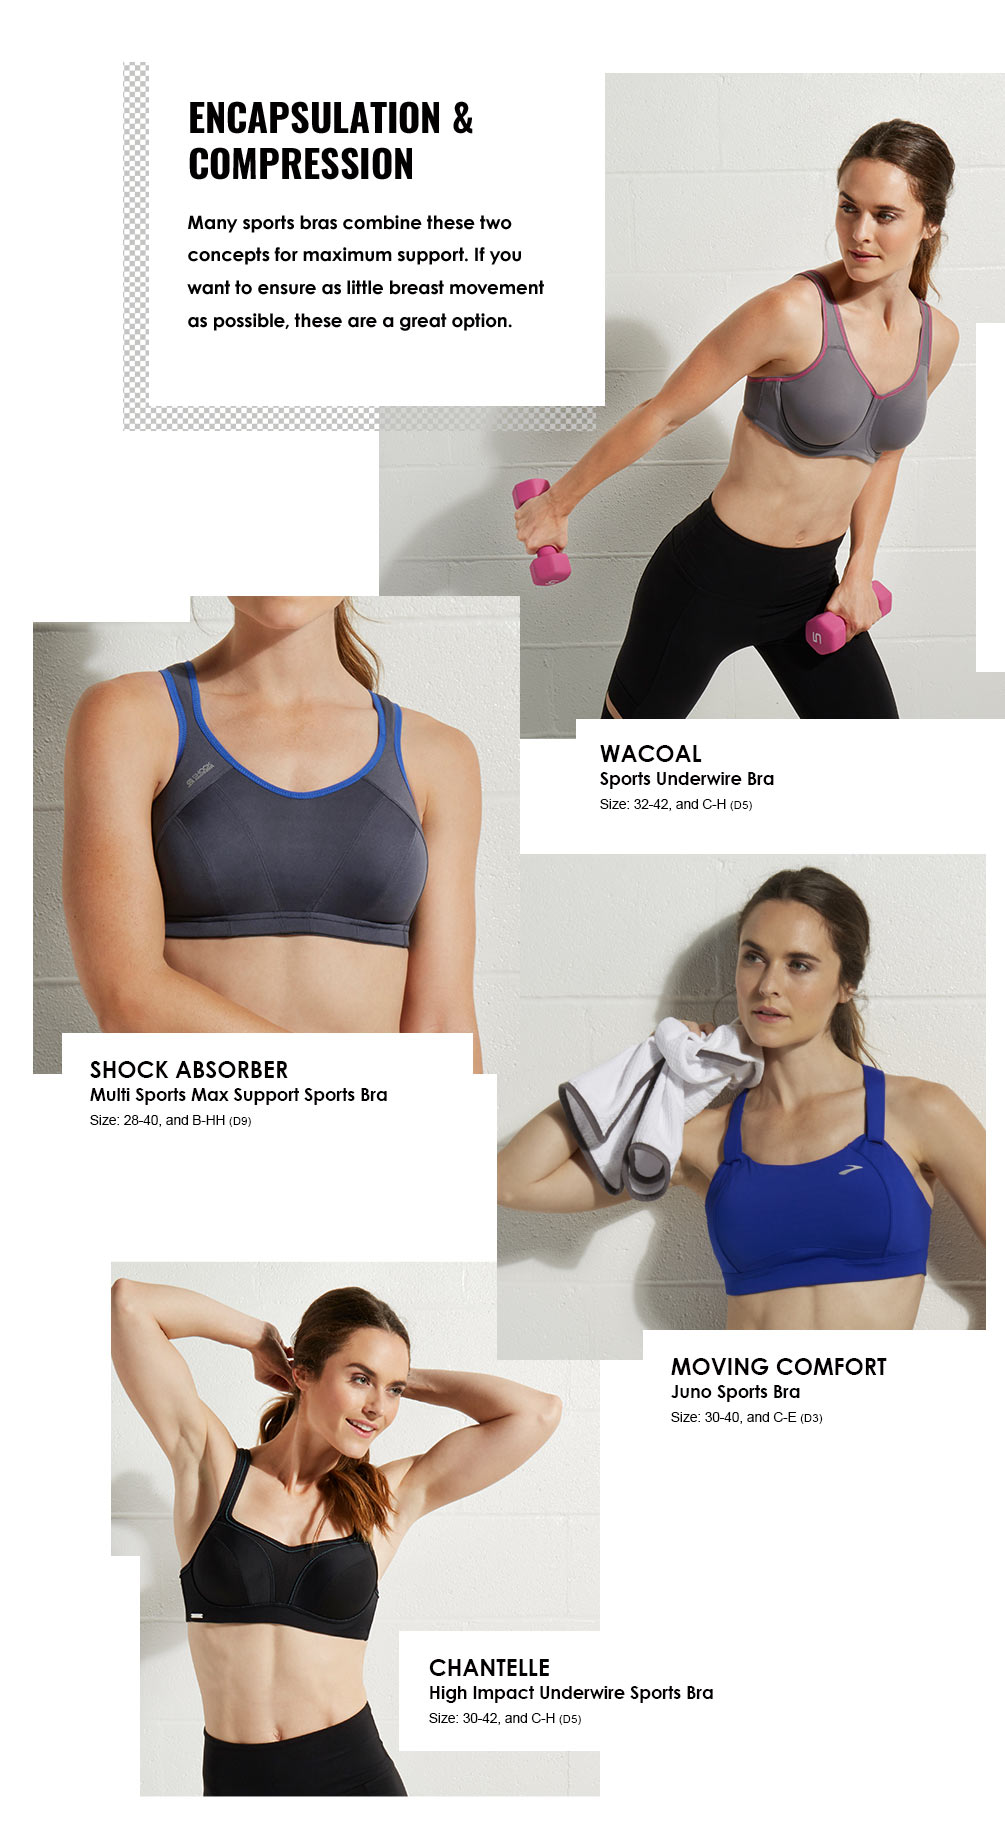 Sports Bras Lookbook - Encapsulation And Compression